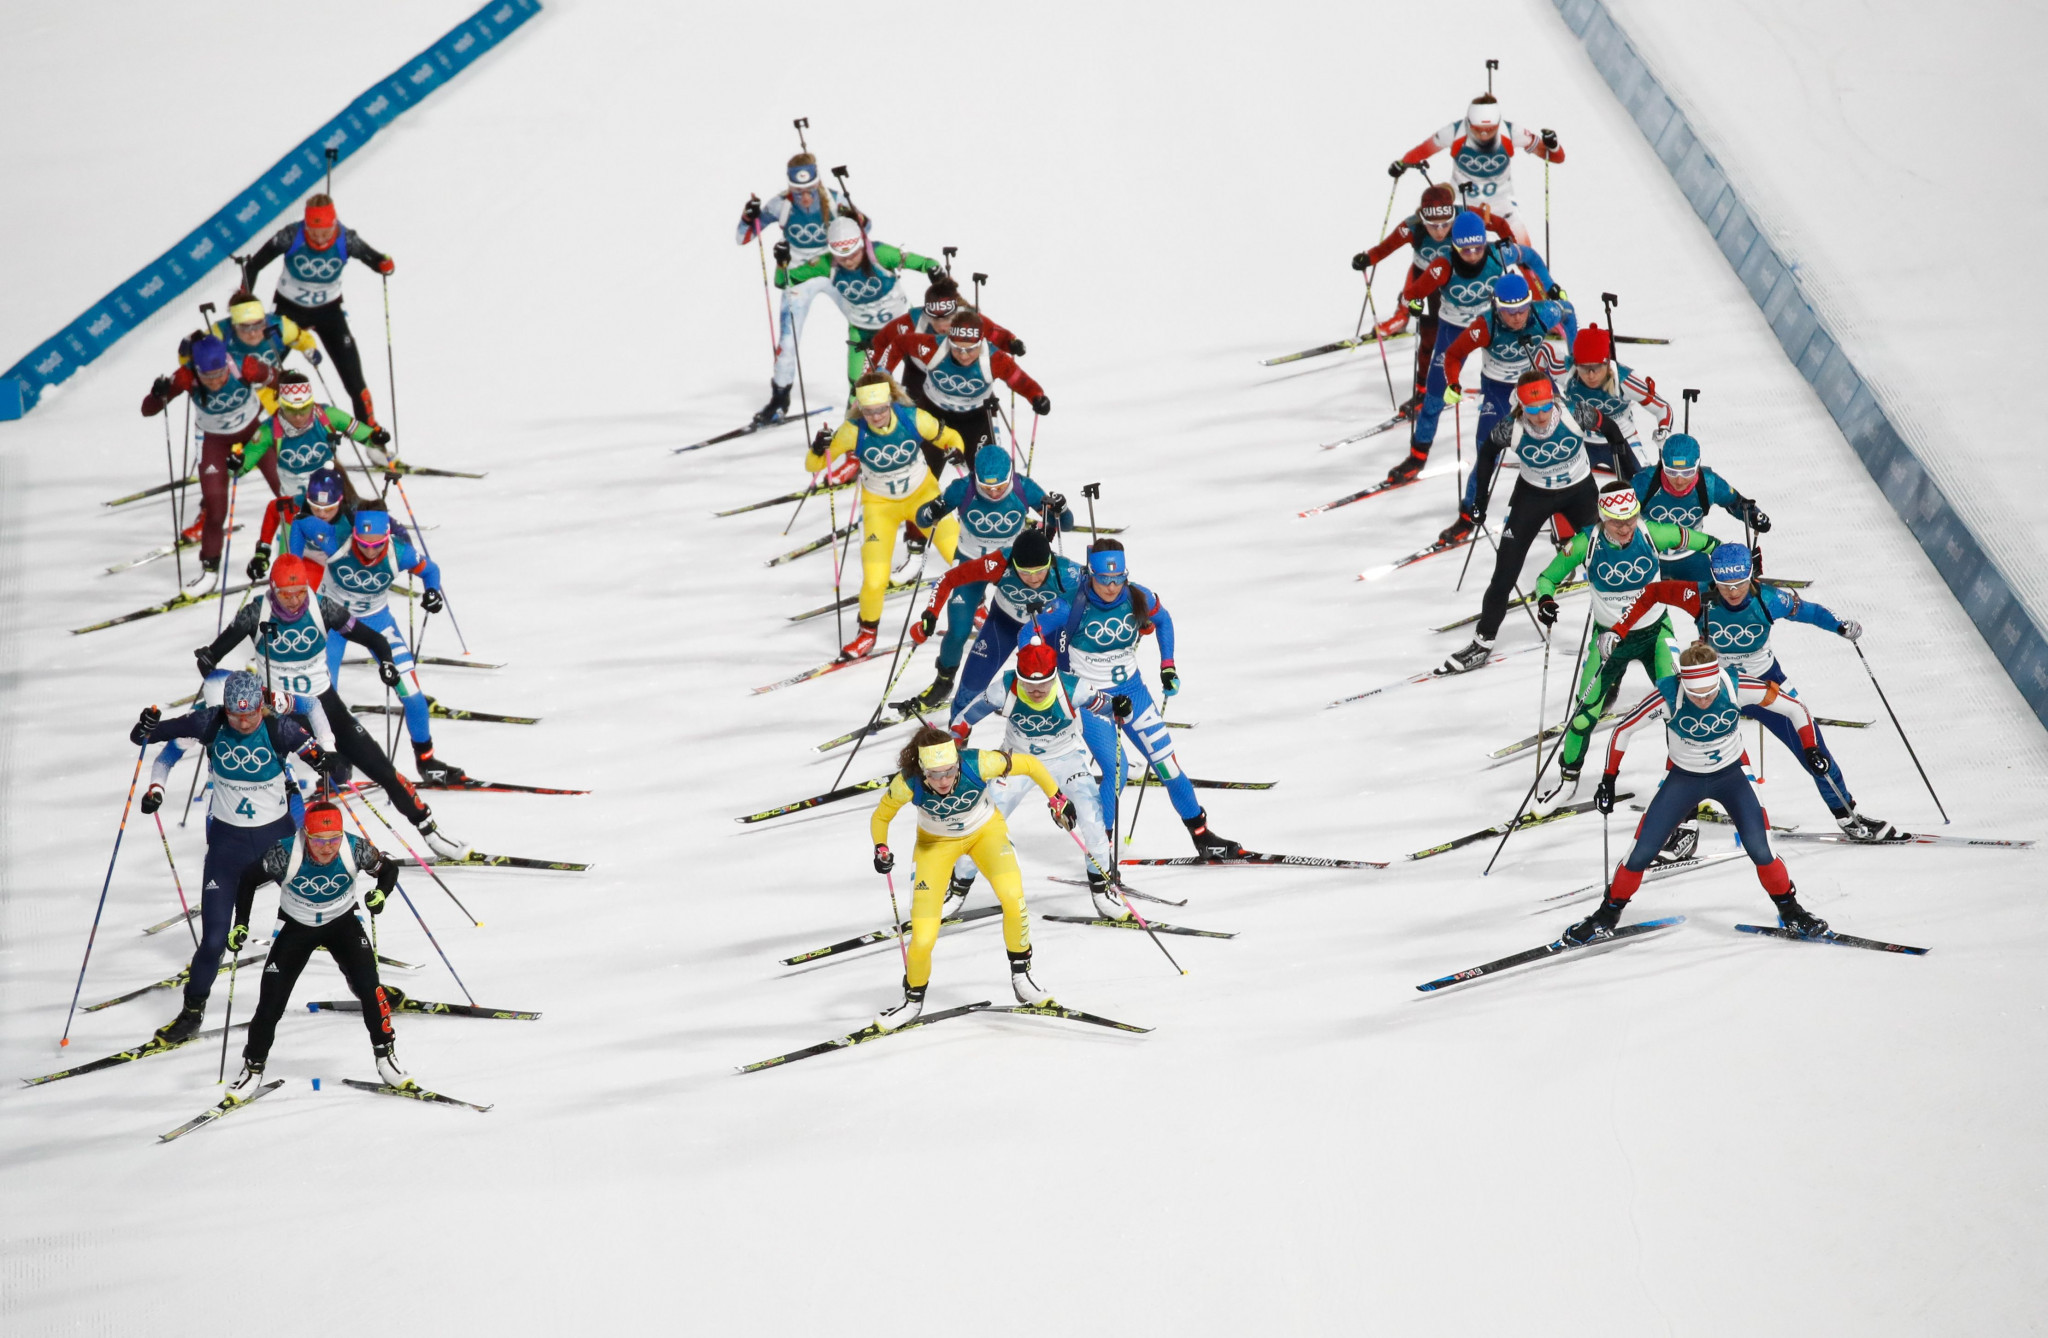 The International Biathlon Union have confirmed they will introduce a mass start event with 60 competitors from next season ©Getty Images